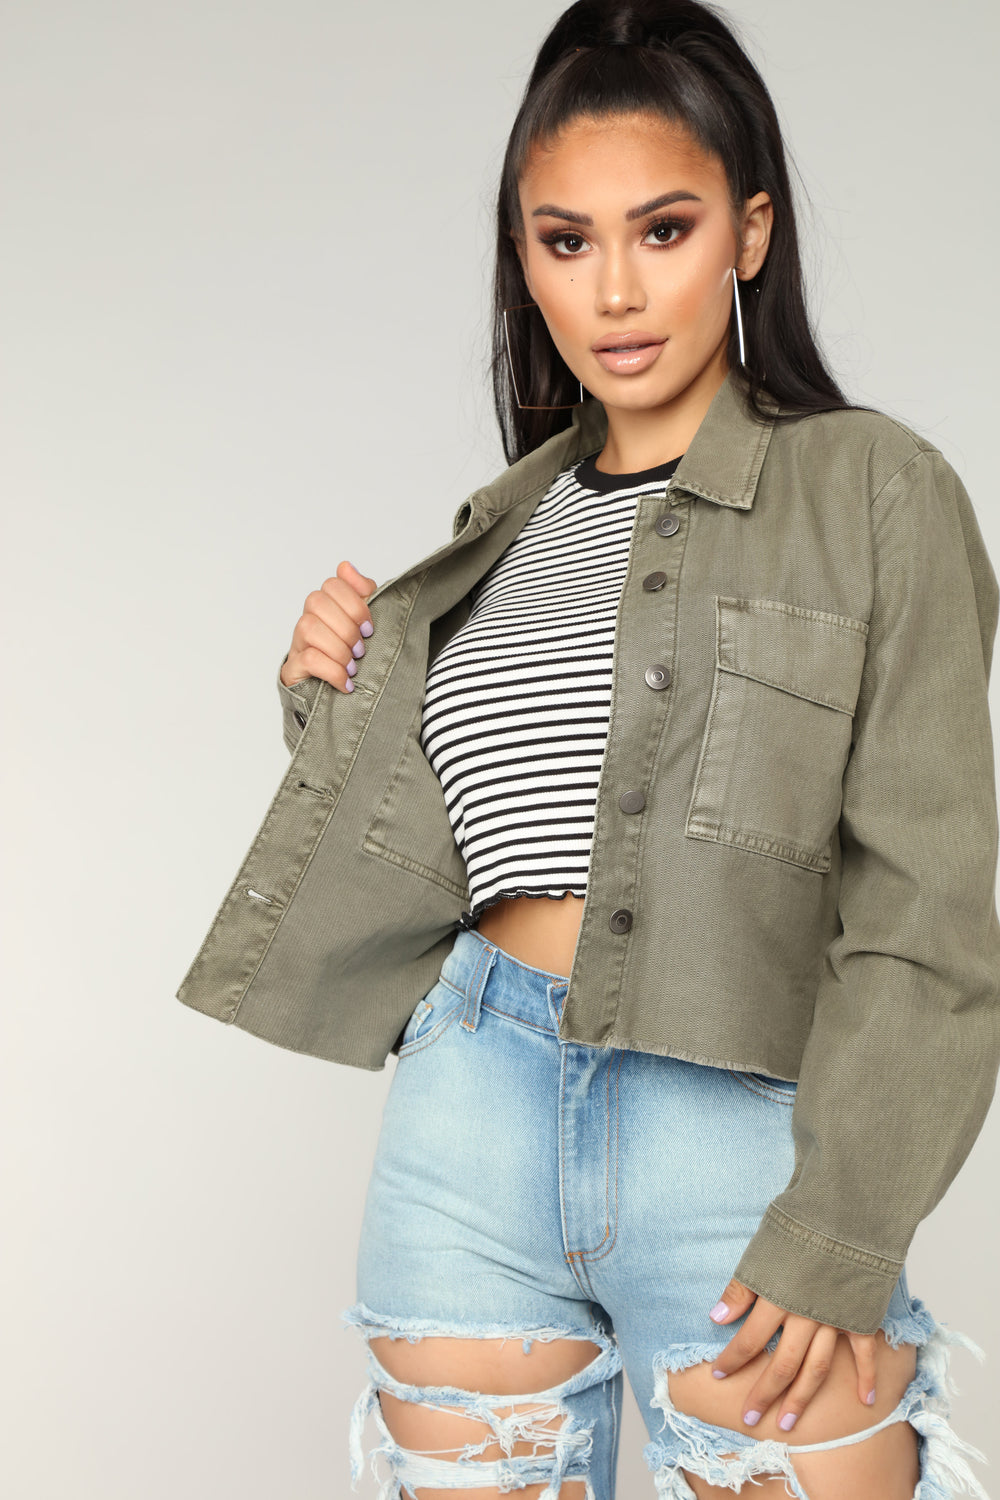 Feeling This Jacket - Green